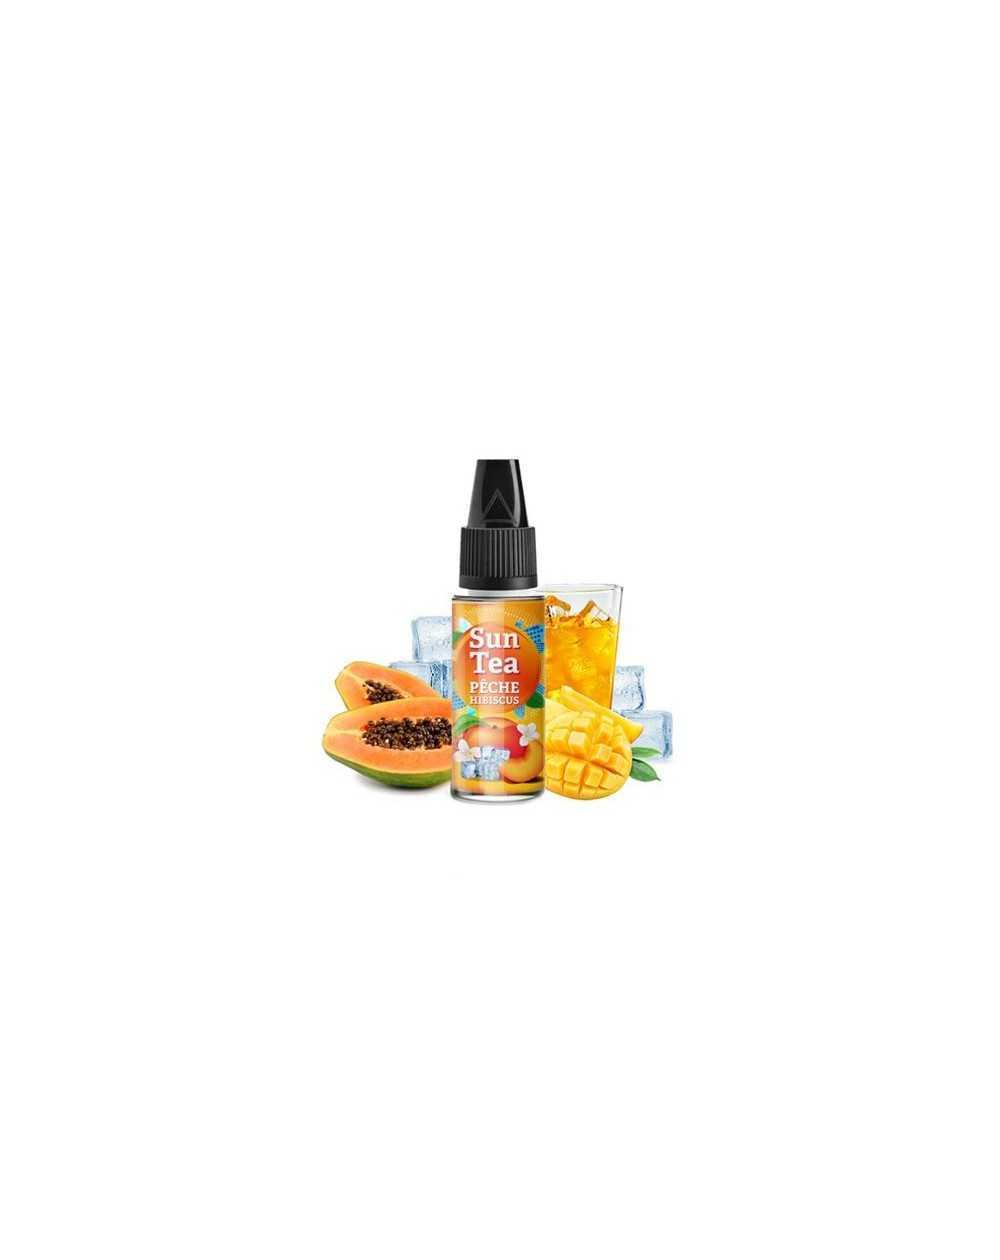 Concentrate Mangue Papaye 10ml - Sun Tea by Full Moon-1